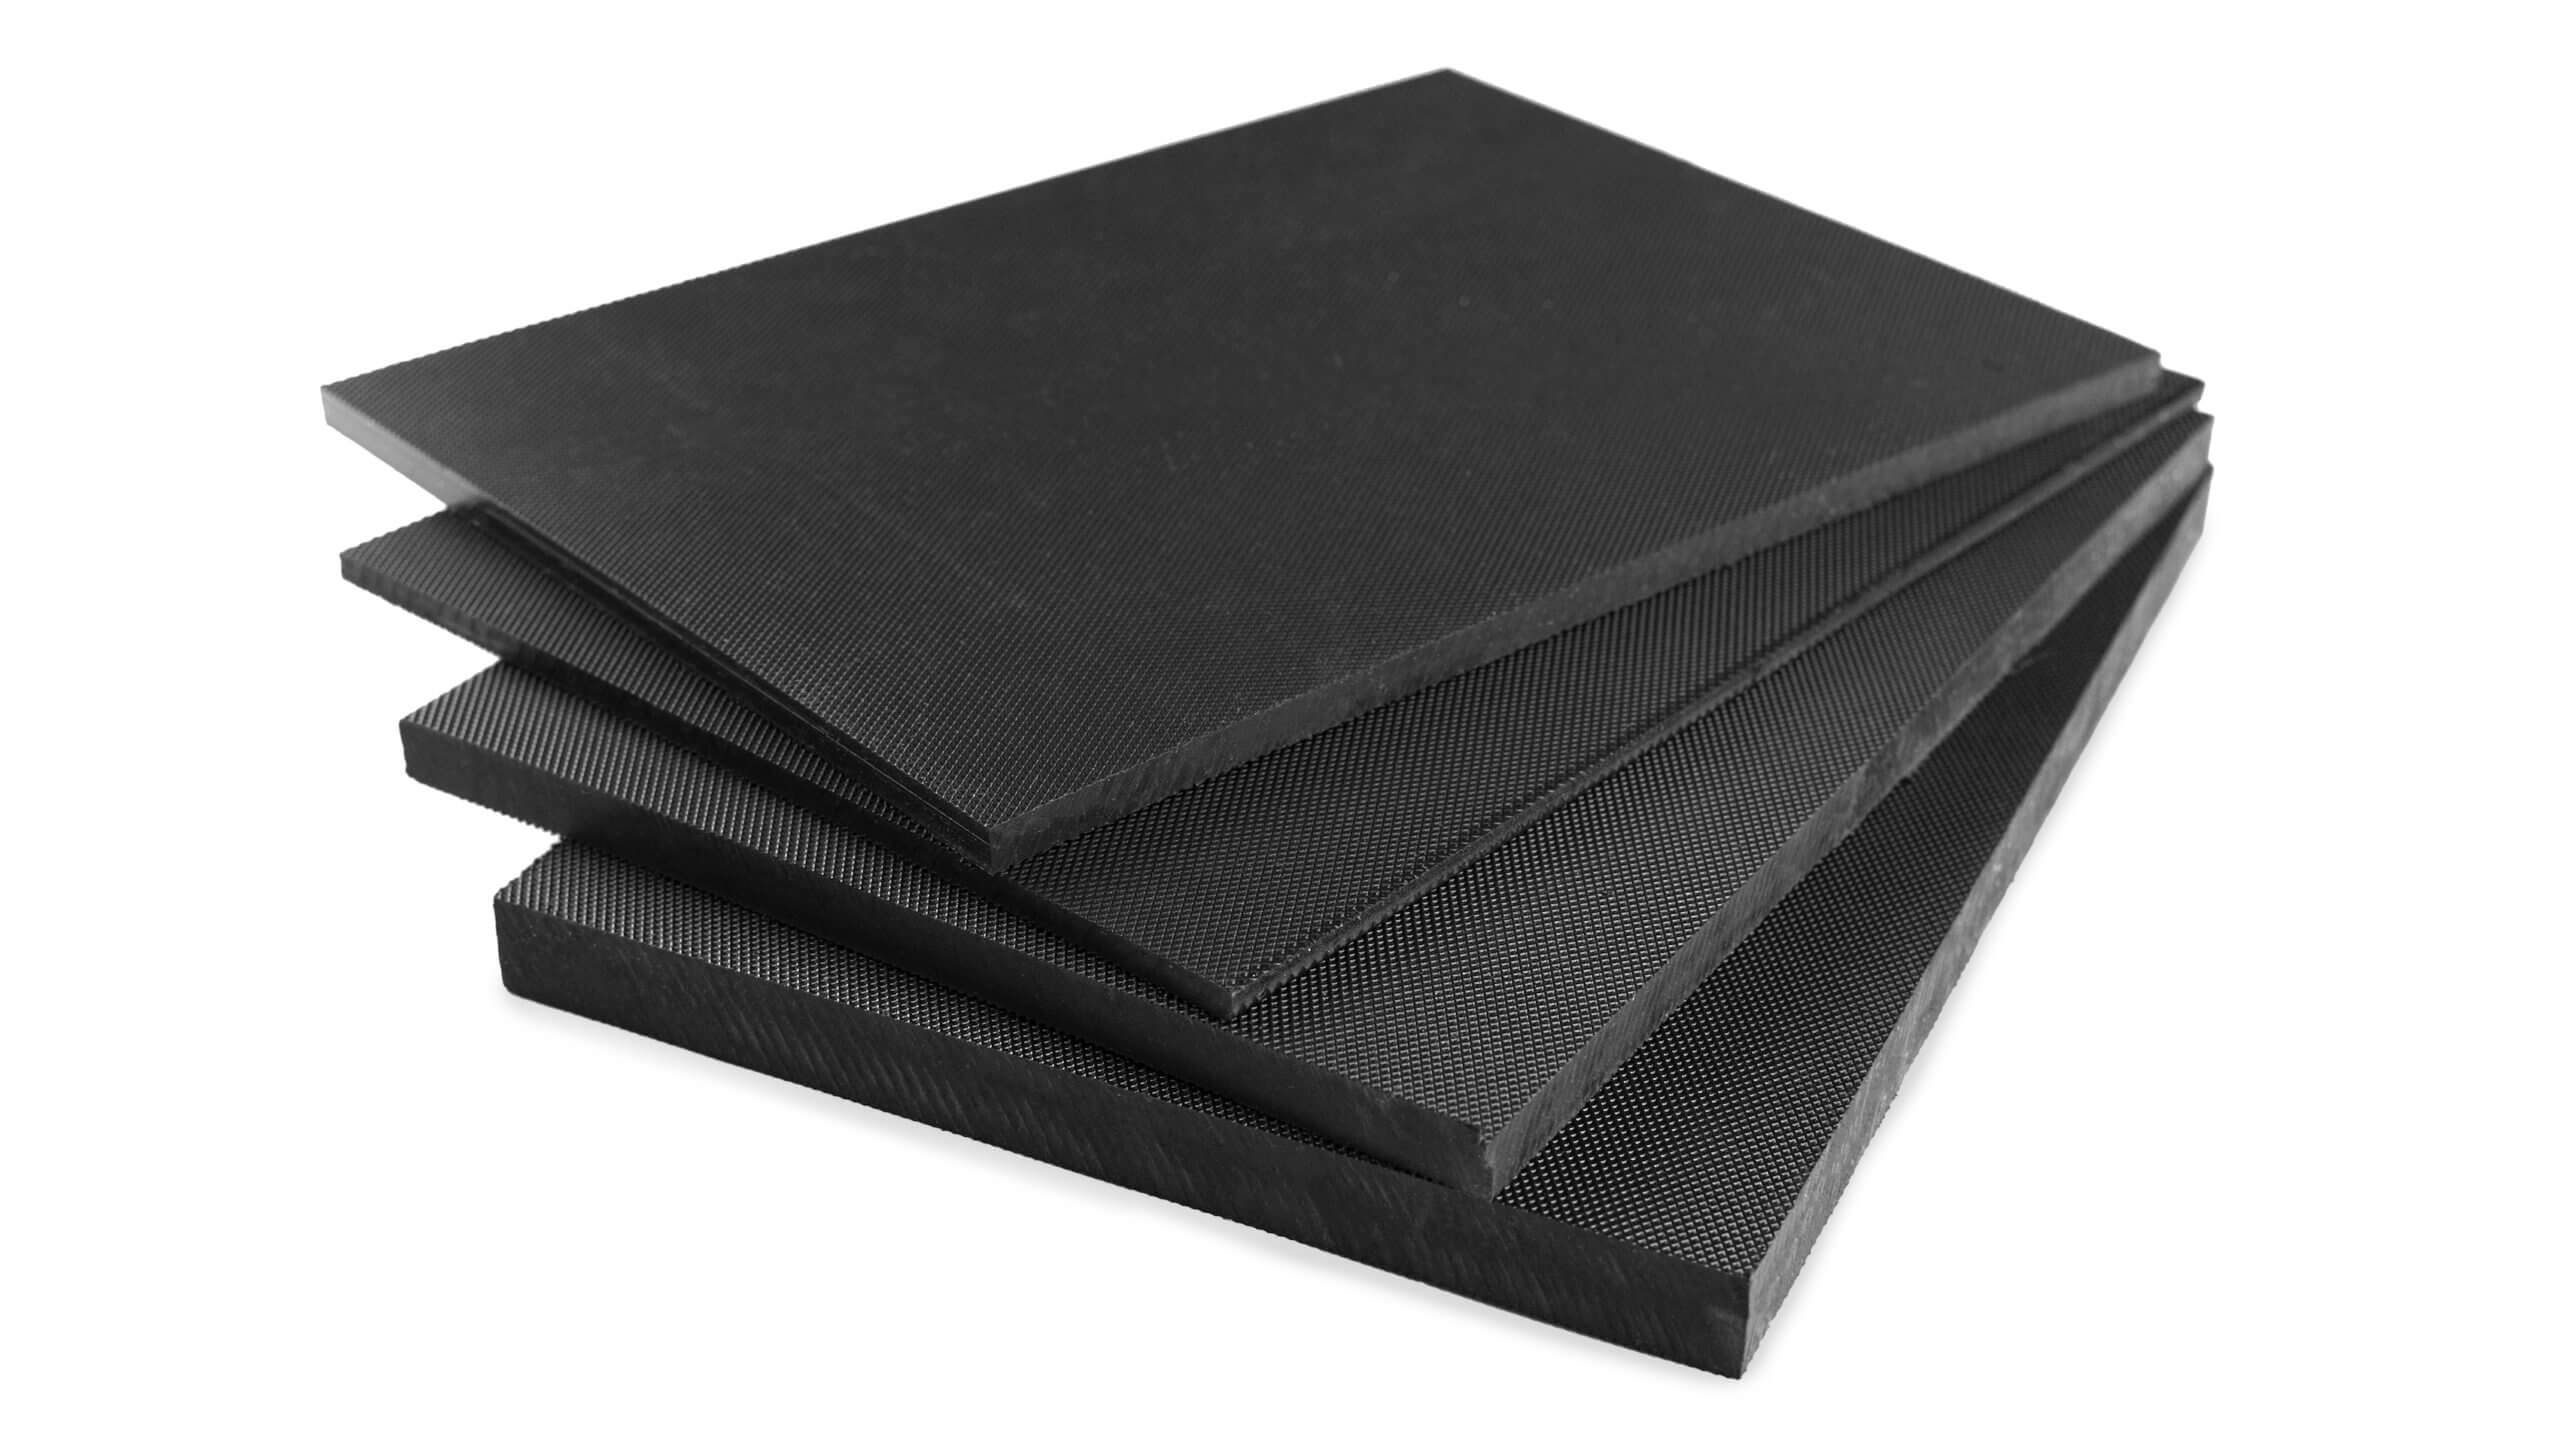 stokbord sheet in black thicknesses